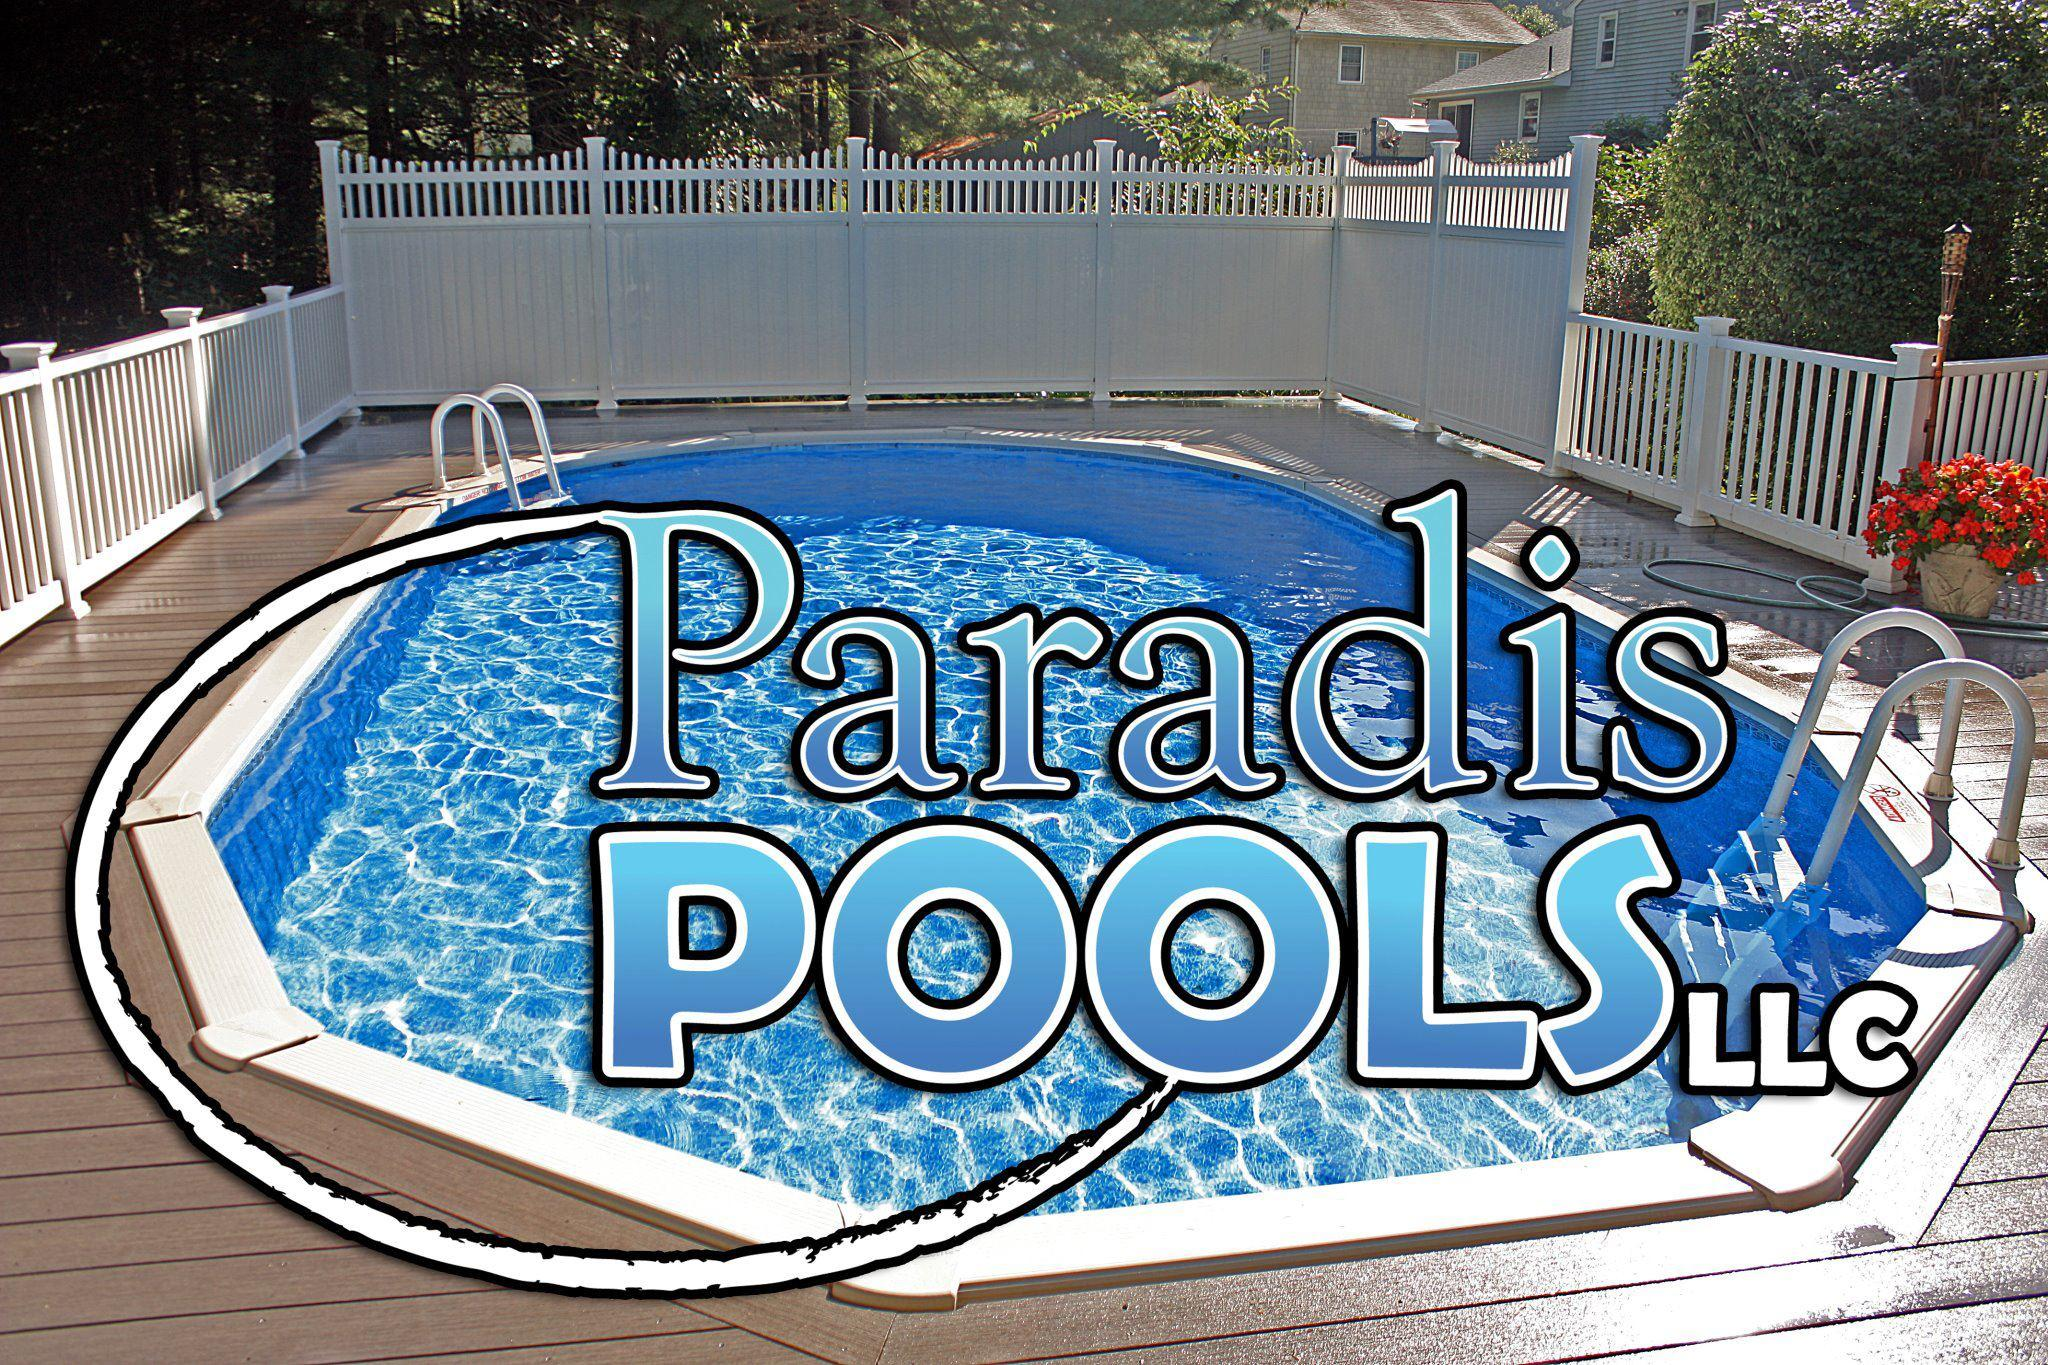 Paradis Pools LLC image 1